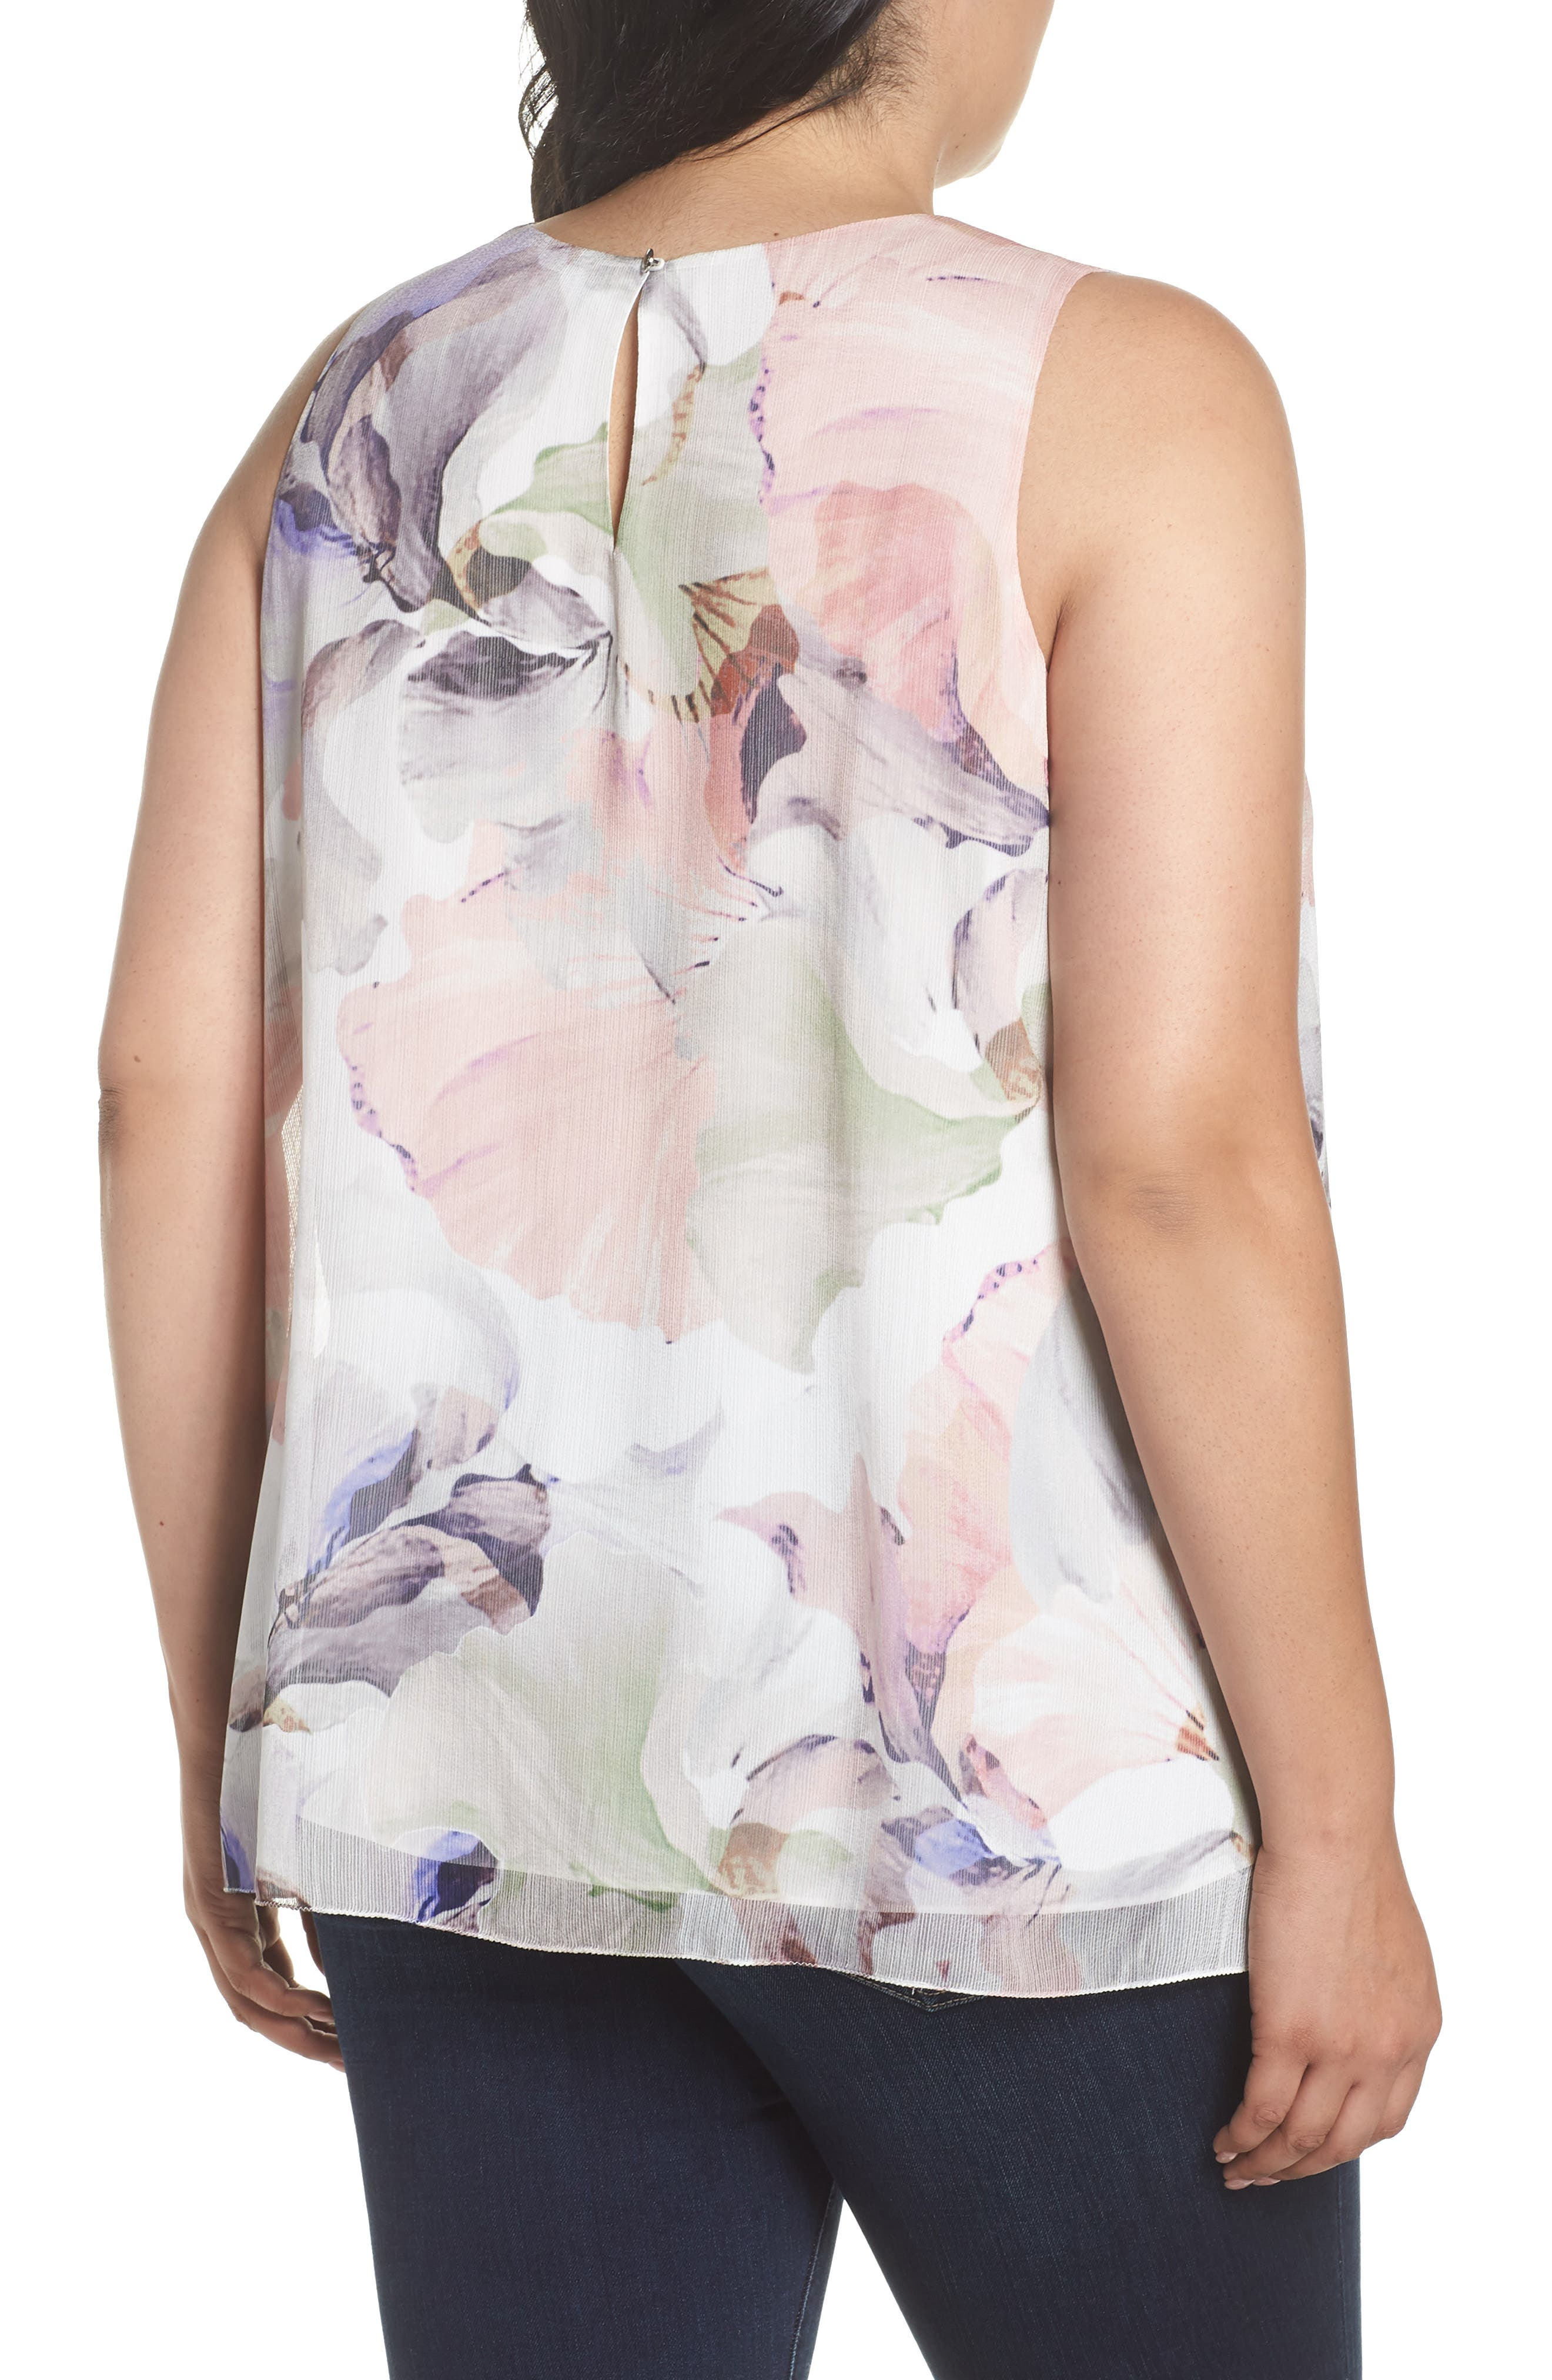 VINCE CAMUTO,                             Diffused Blooms Blouse,                             Alternate thumbnail 2, color,                             903